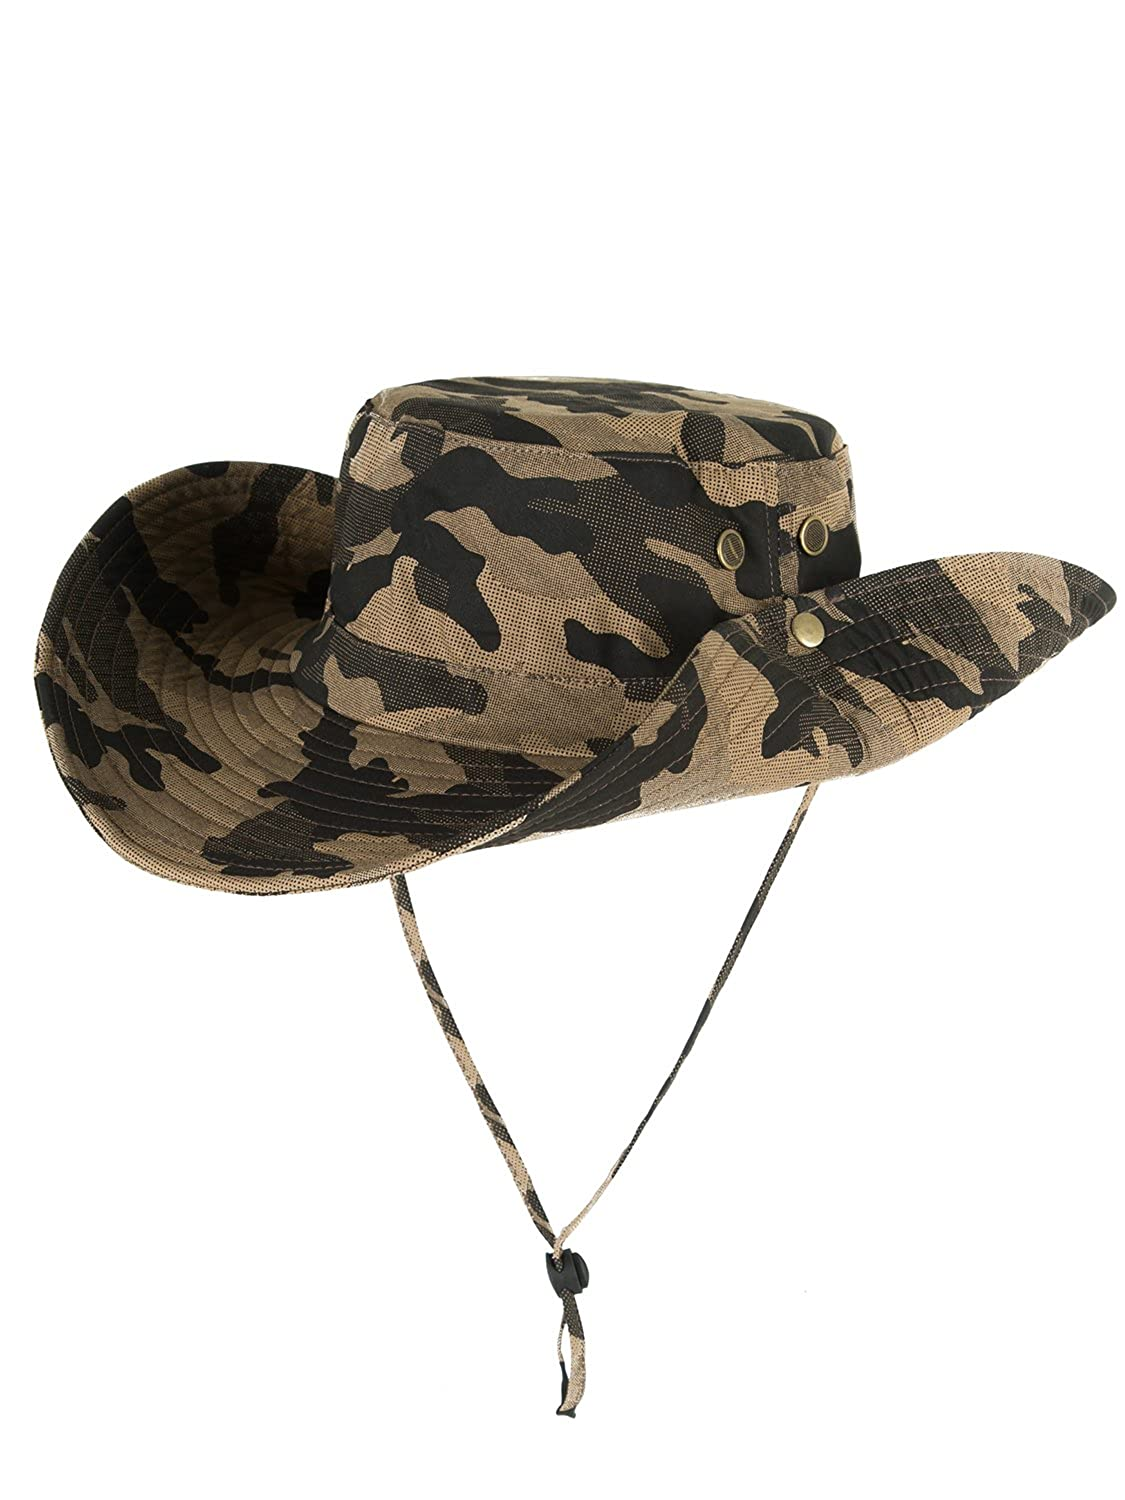 aa09c8b09 Choies Unisex Outdoor Waterproof Boonie Hat Sun Protection Wide Brim  Breathable Fishing Sun Hat HCD00ZY491